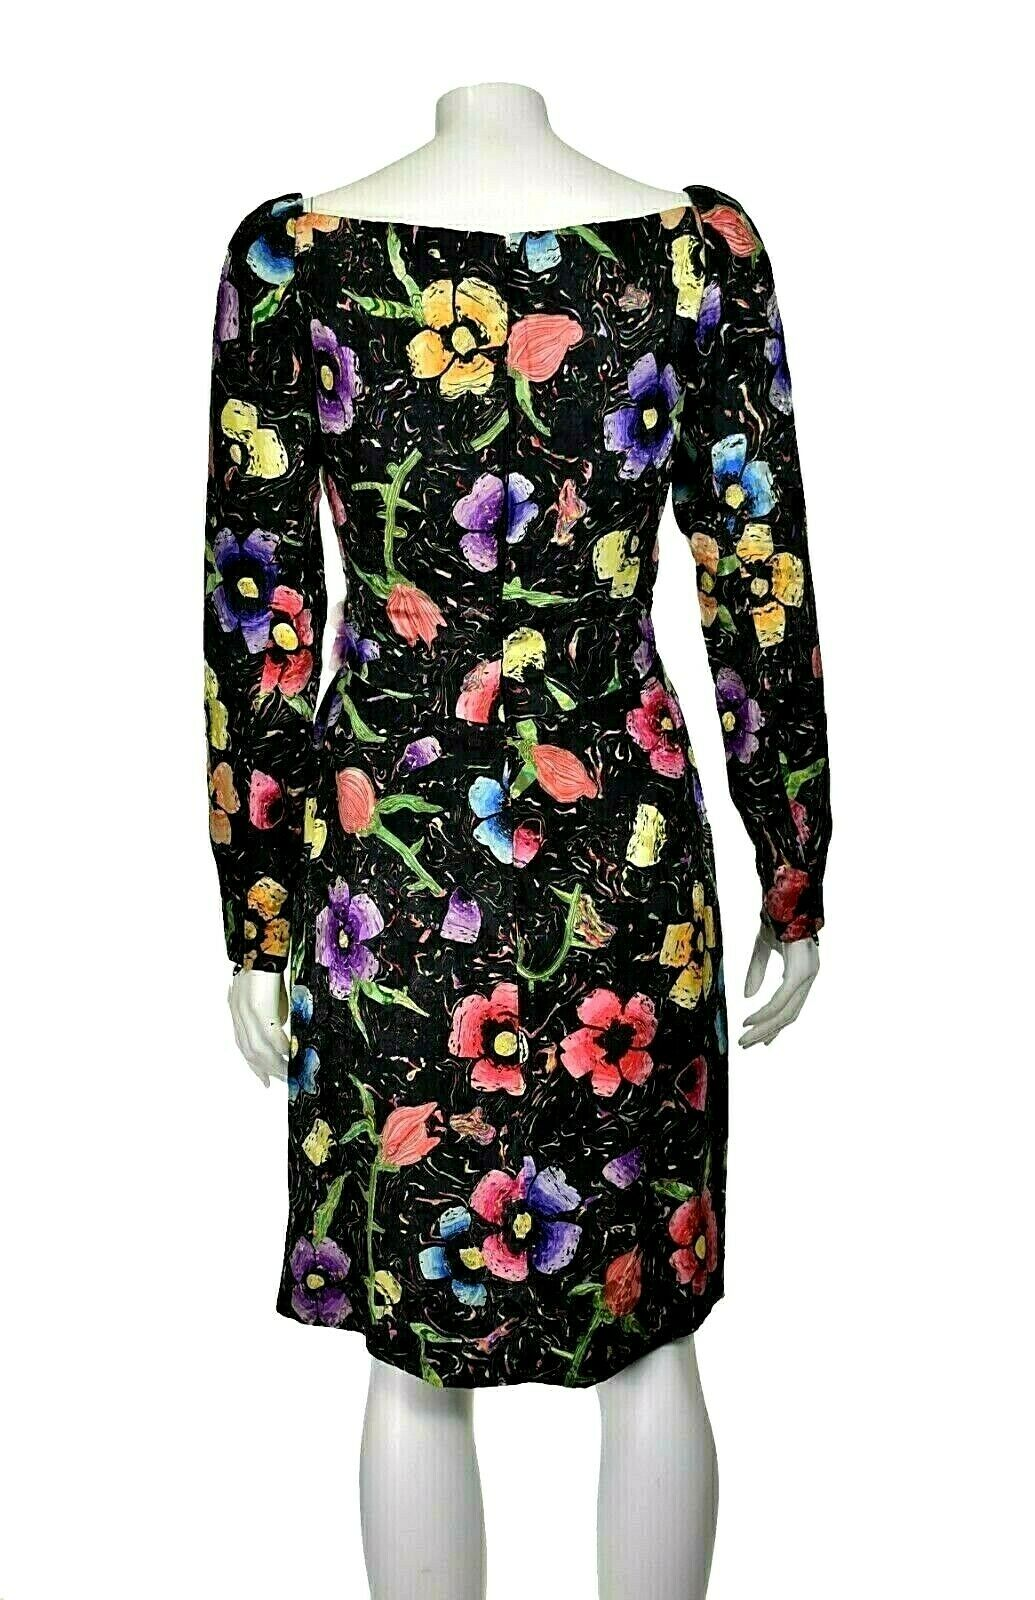 ARNOLD SCAASI Vintage Silk Floral Cocktail Party … - image 6